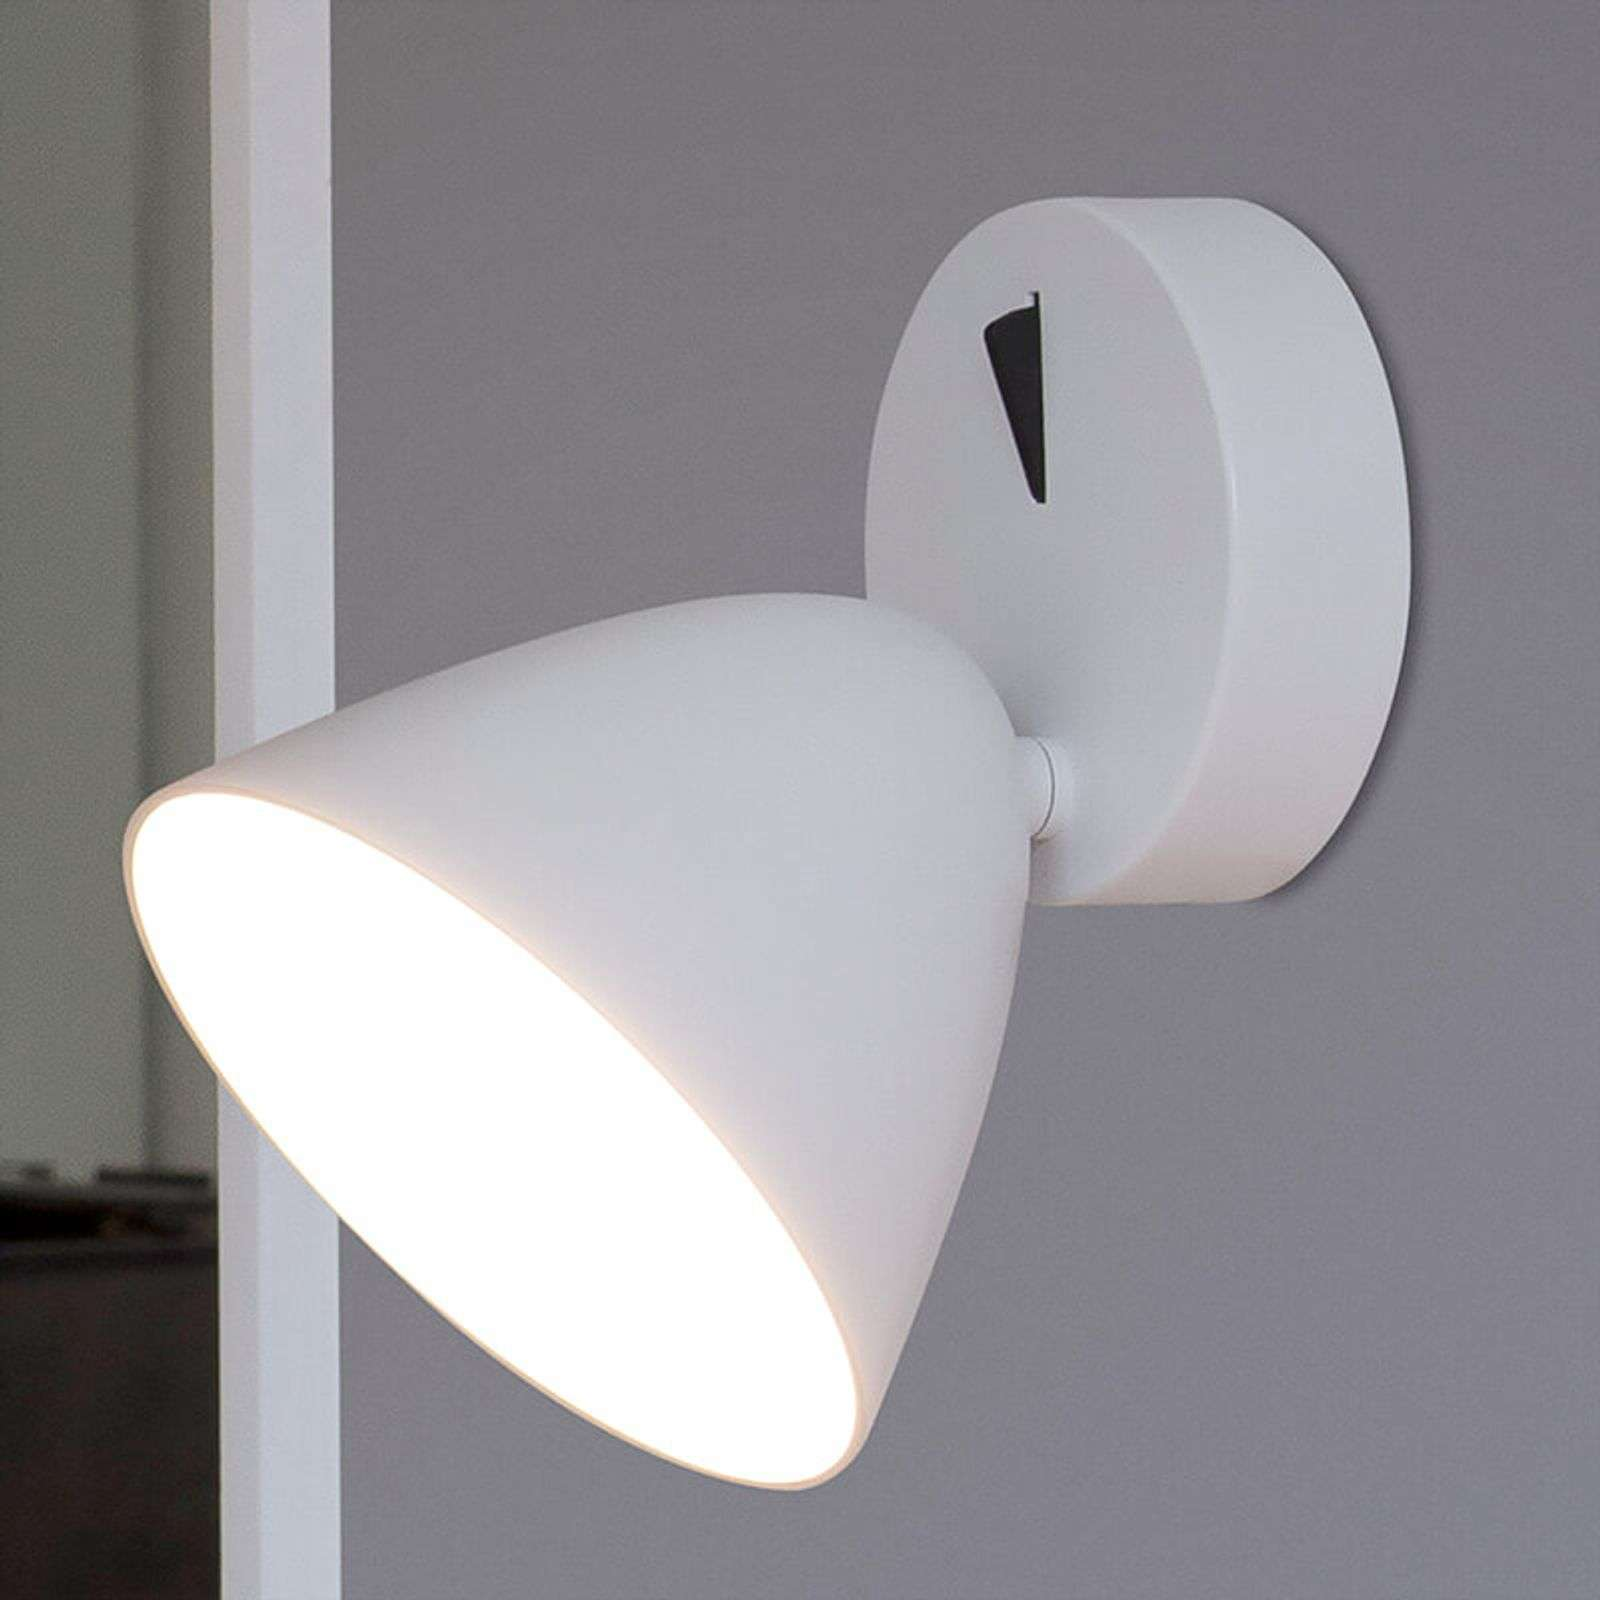 Applique murale LED Flash, blanc